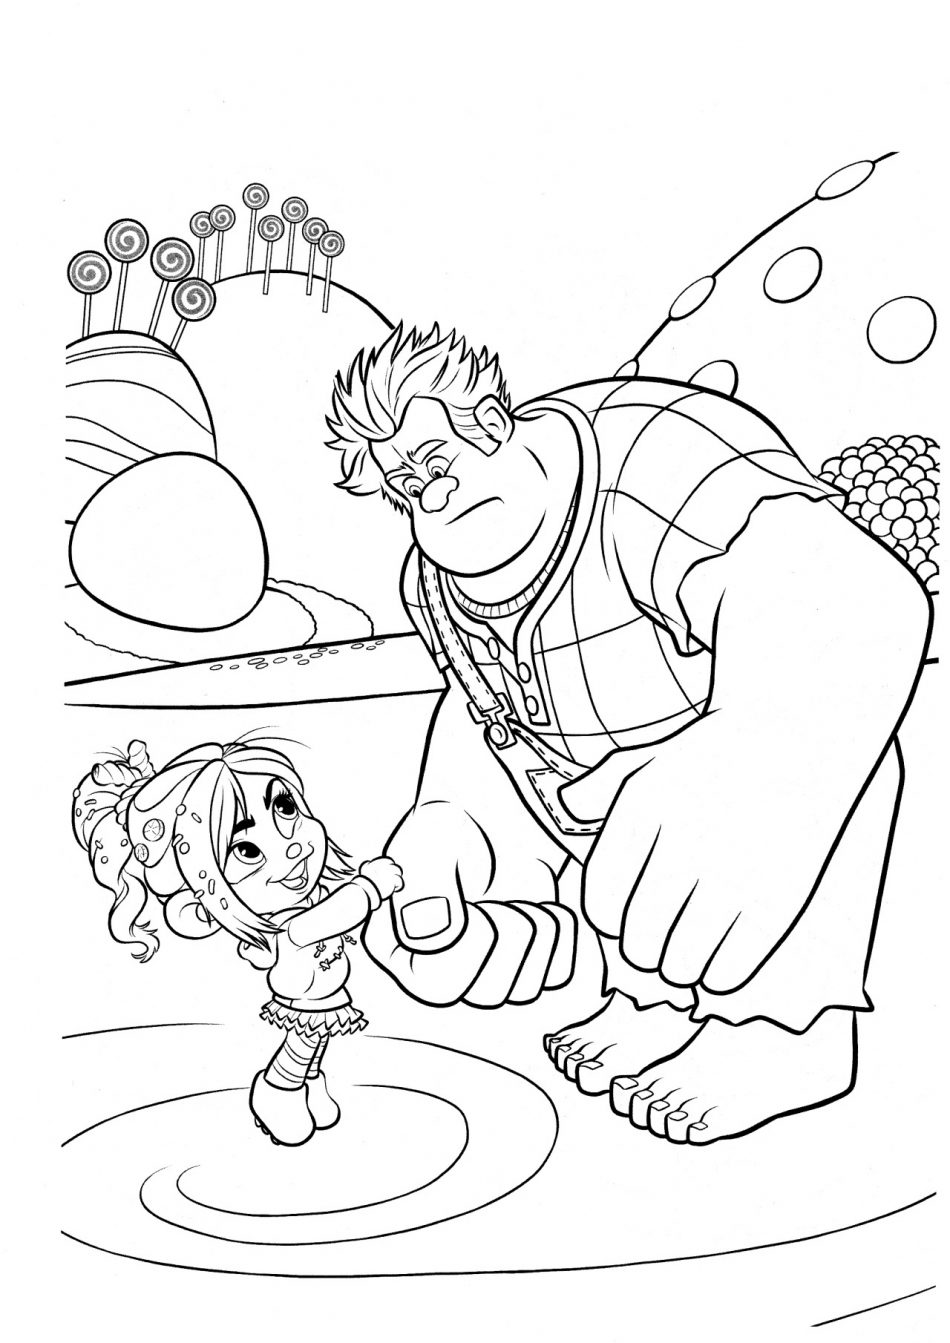 Vanellope Asks Ralph To Help a New Kart